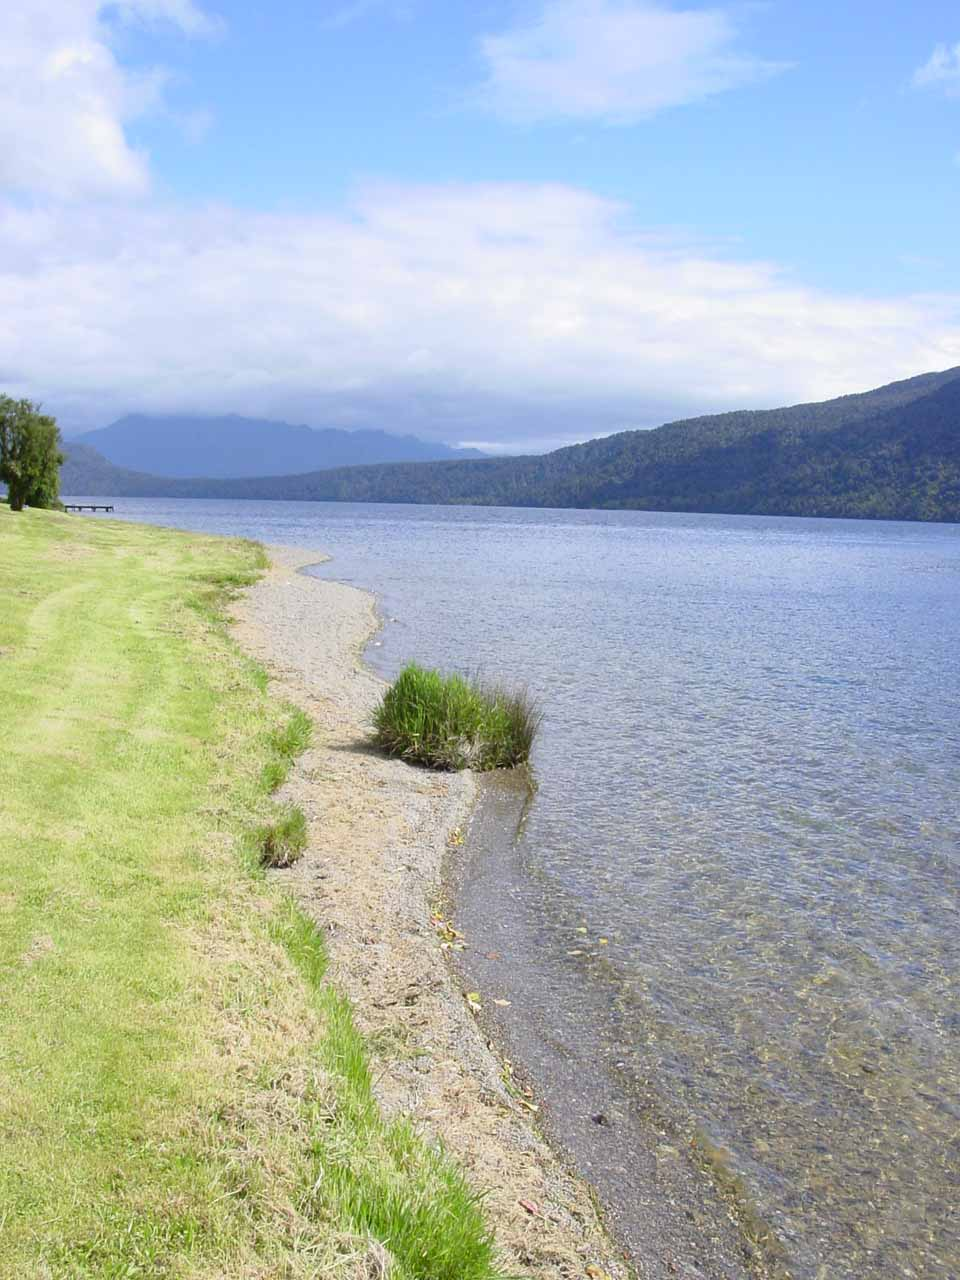 About 41km south of the Kumara Junction was the attractive and tranquil Lake Kaniere due southeast of Hokitika